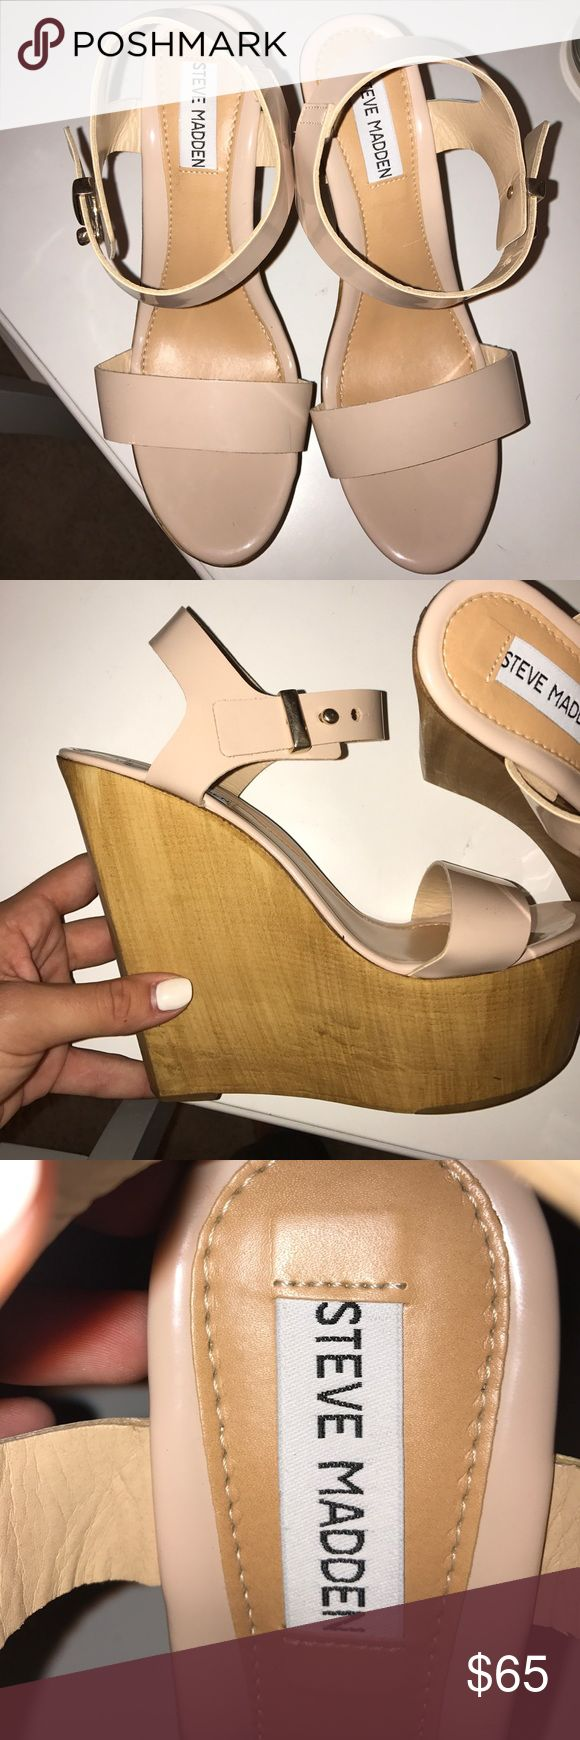 Steve Madden wedges Blush color wedges with gold. Great quality. Only worn once Steve Madden Shoes Wedges